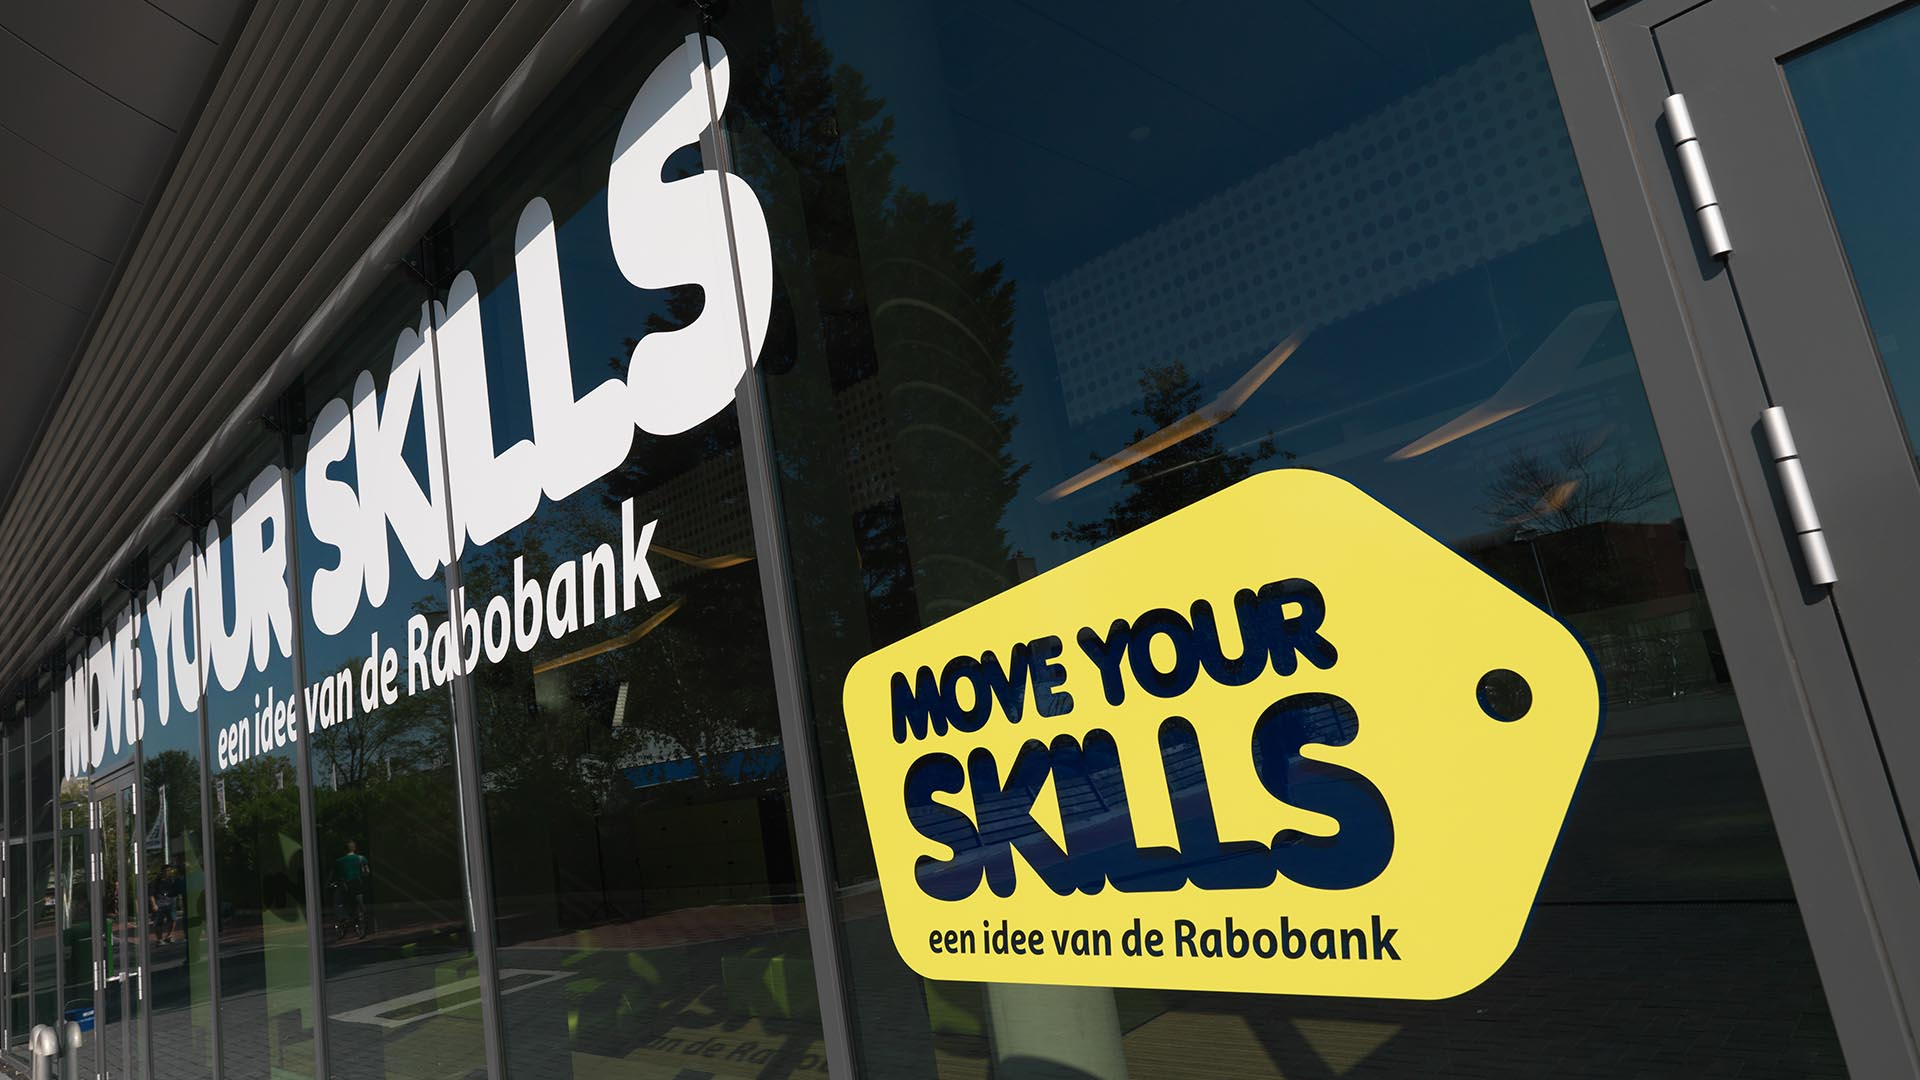 Move your skills Rabobank